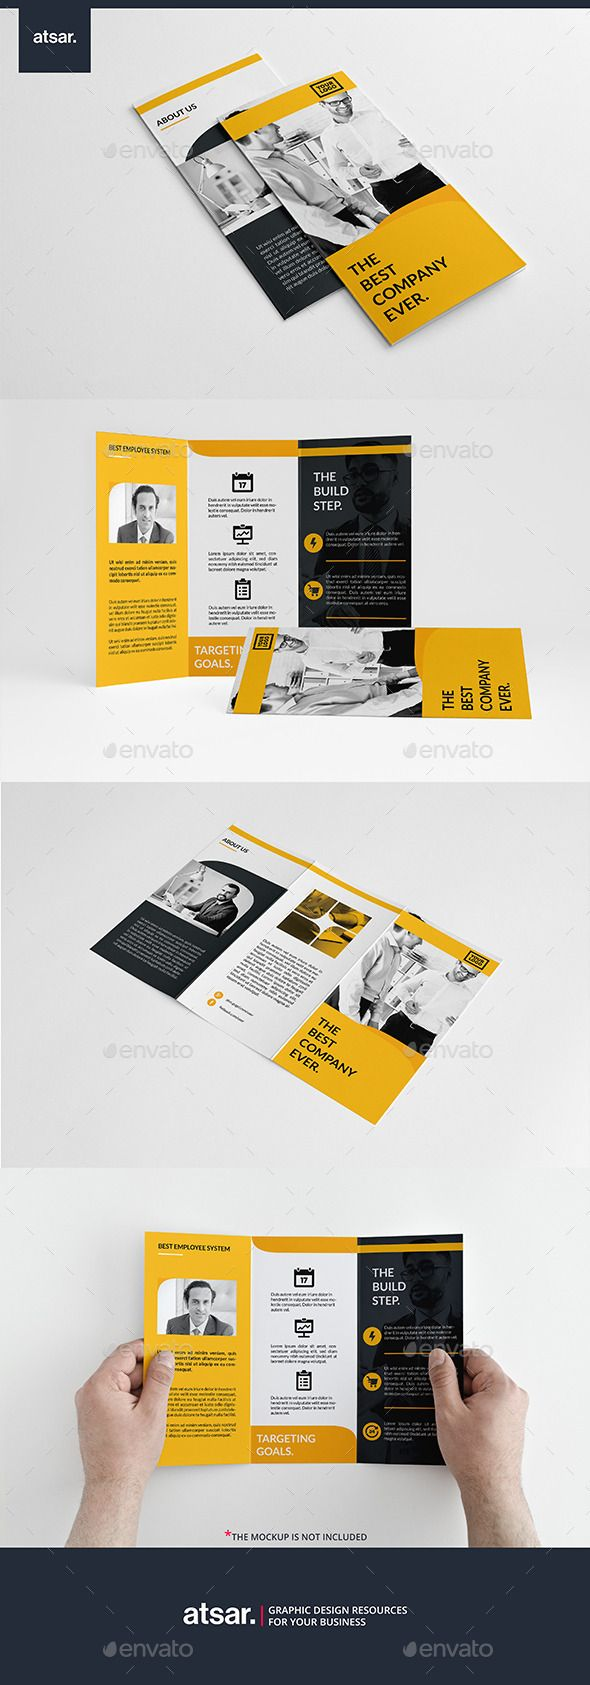 Simply Yellow Trifold InDesign Brochure Template #design Download: http://graphicriver.net/item/simply-yellow-trifold/12788181?ref=ksioks